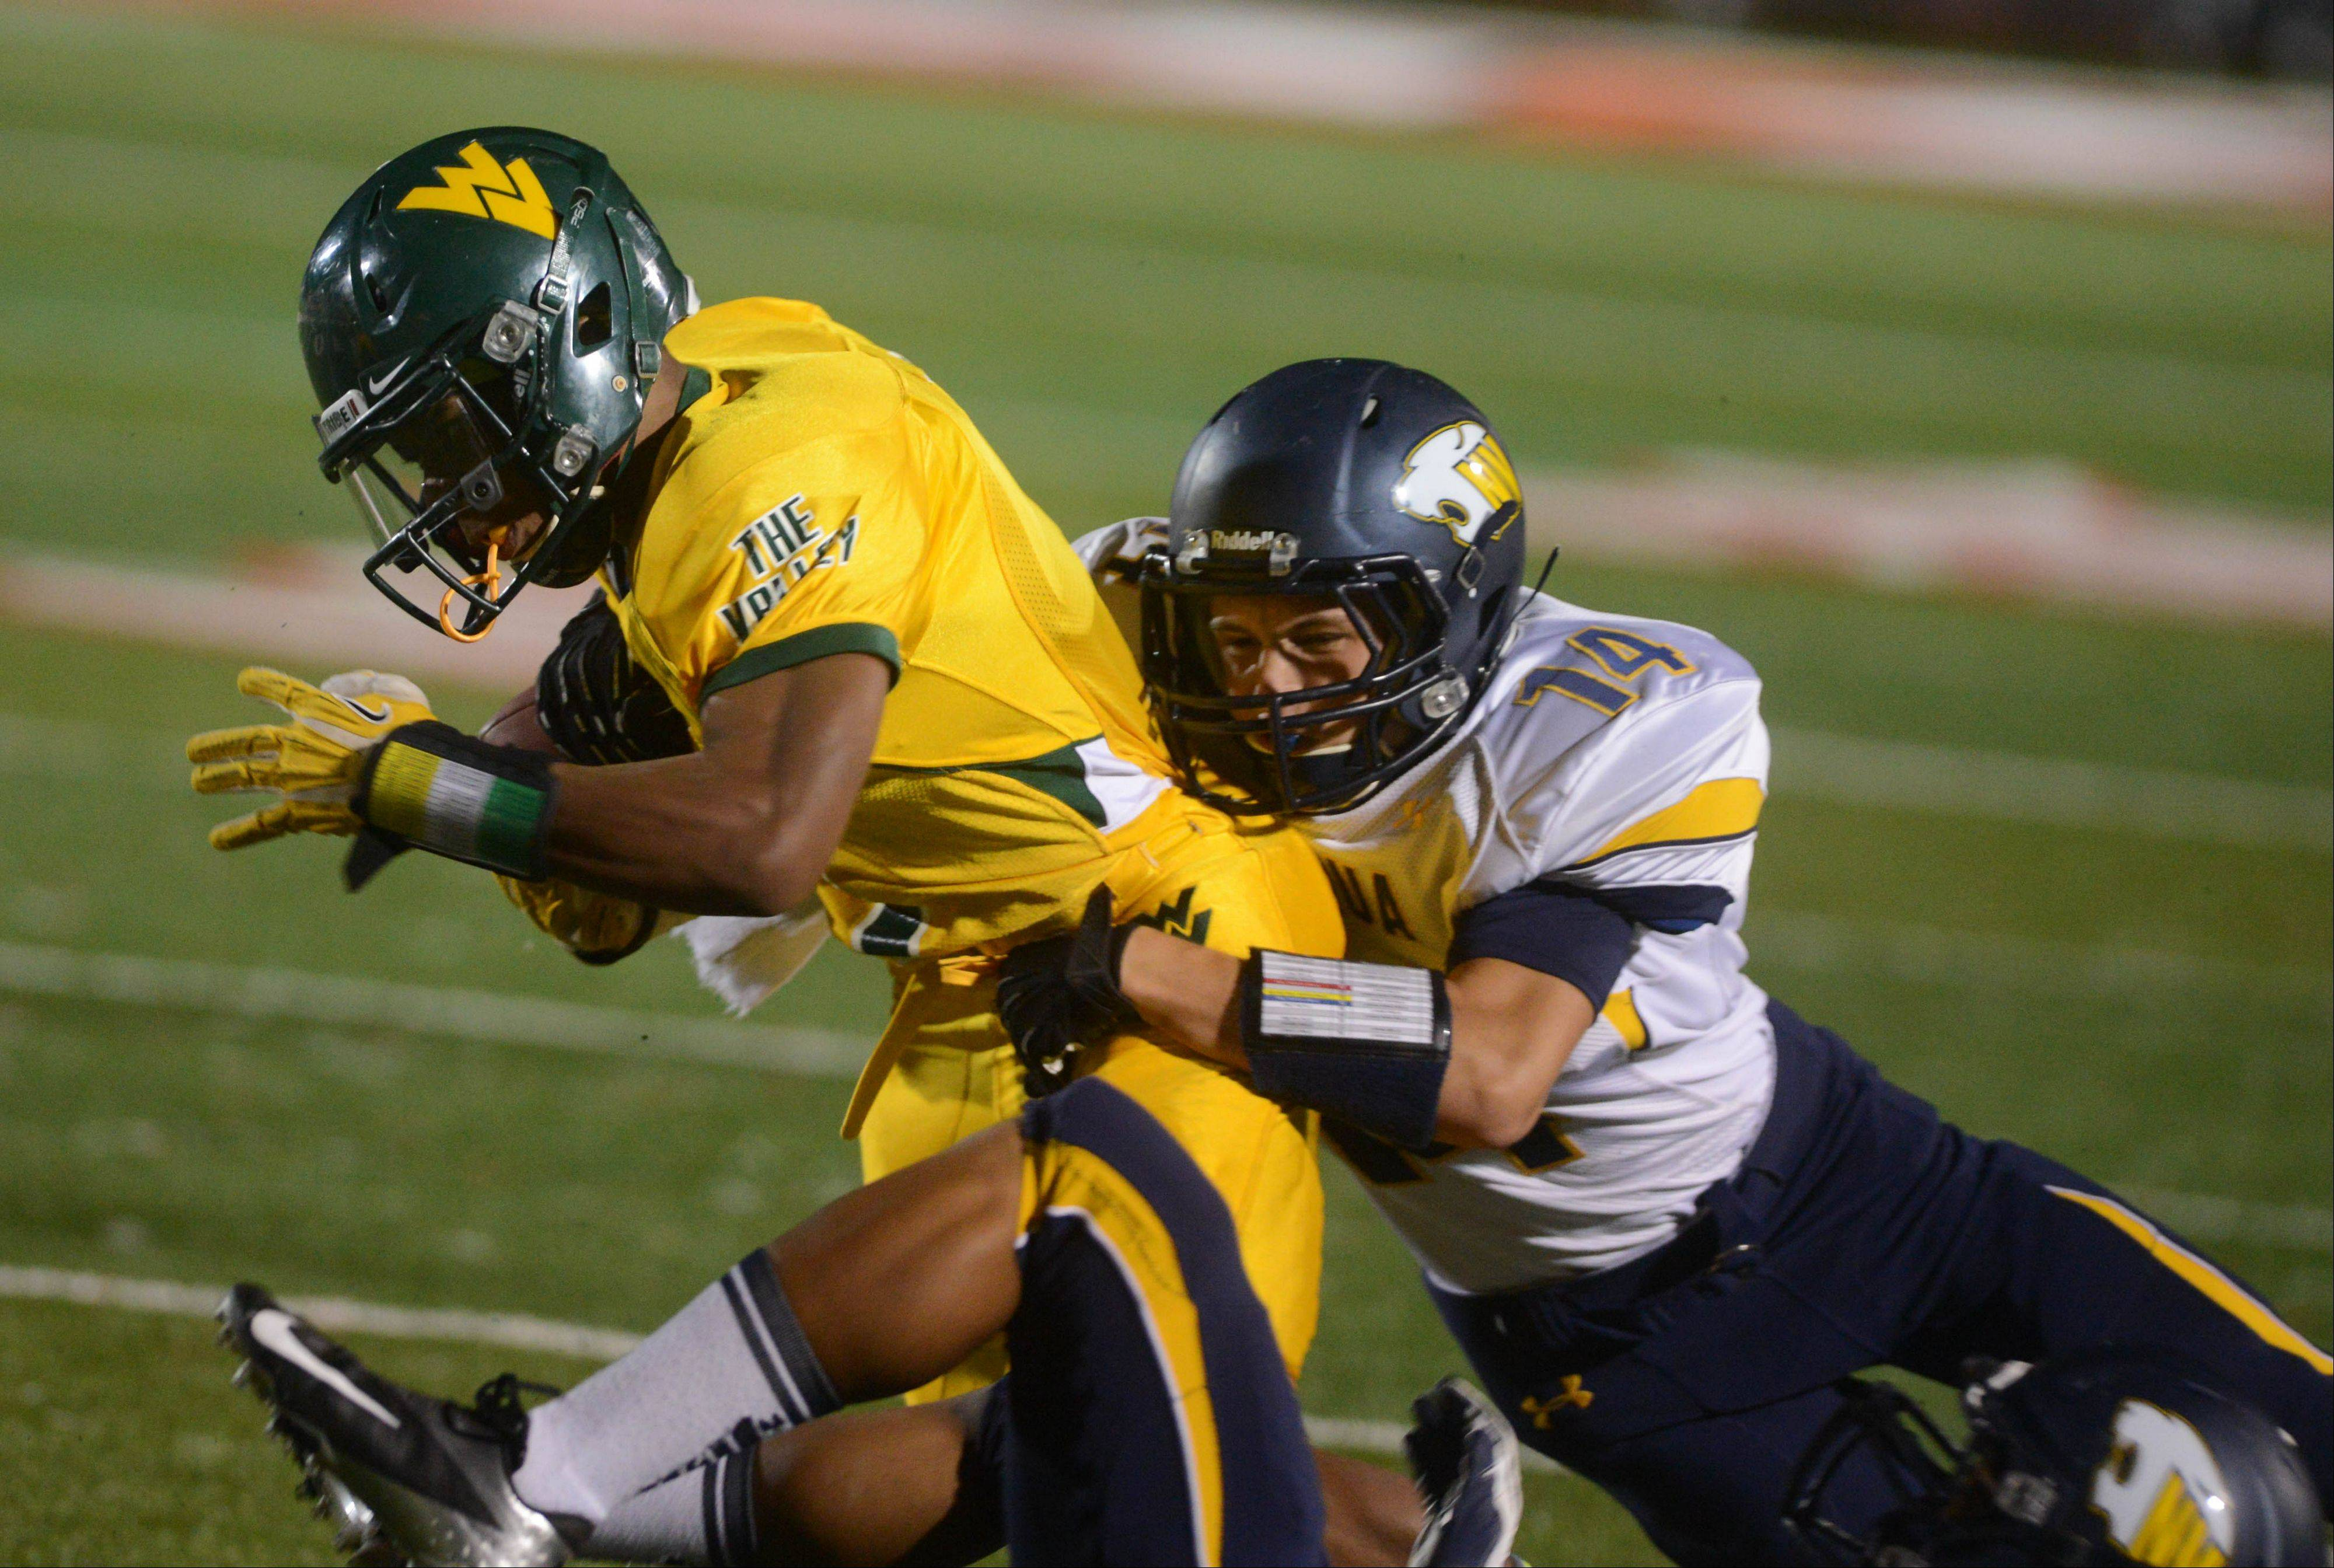 Images: Neuqua Valley vs. Waubonsie Valley football